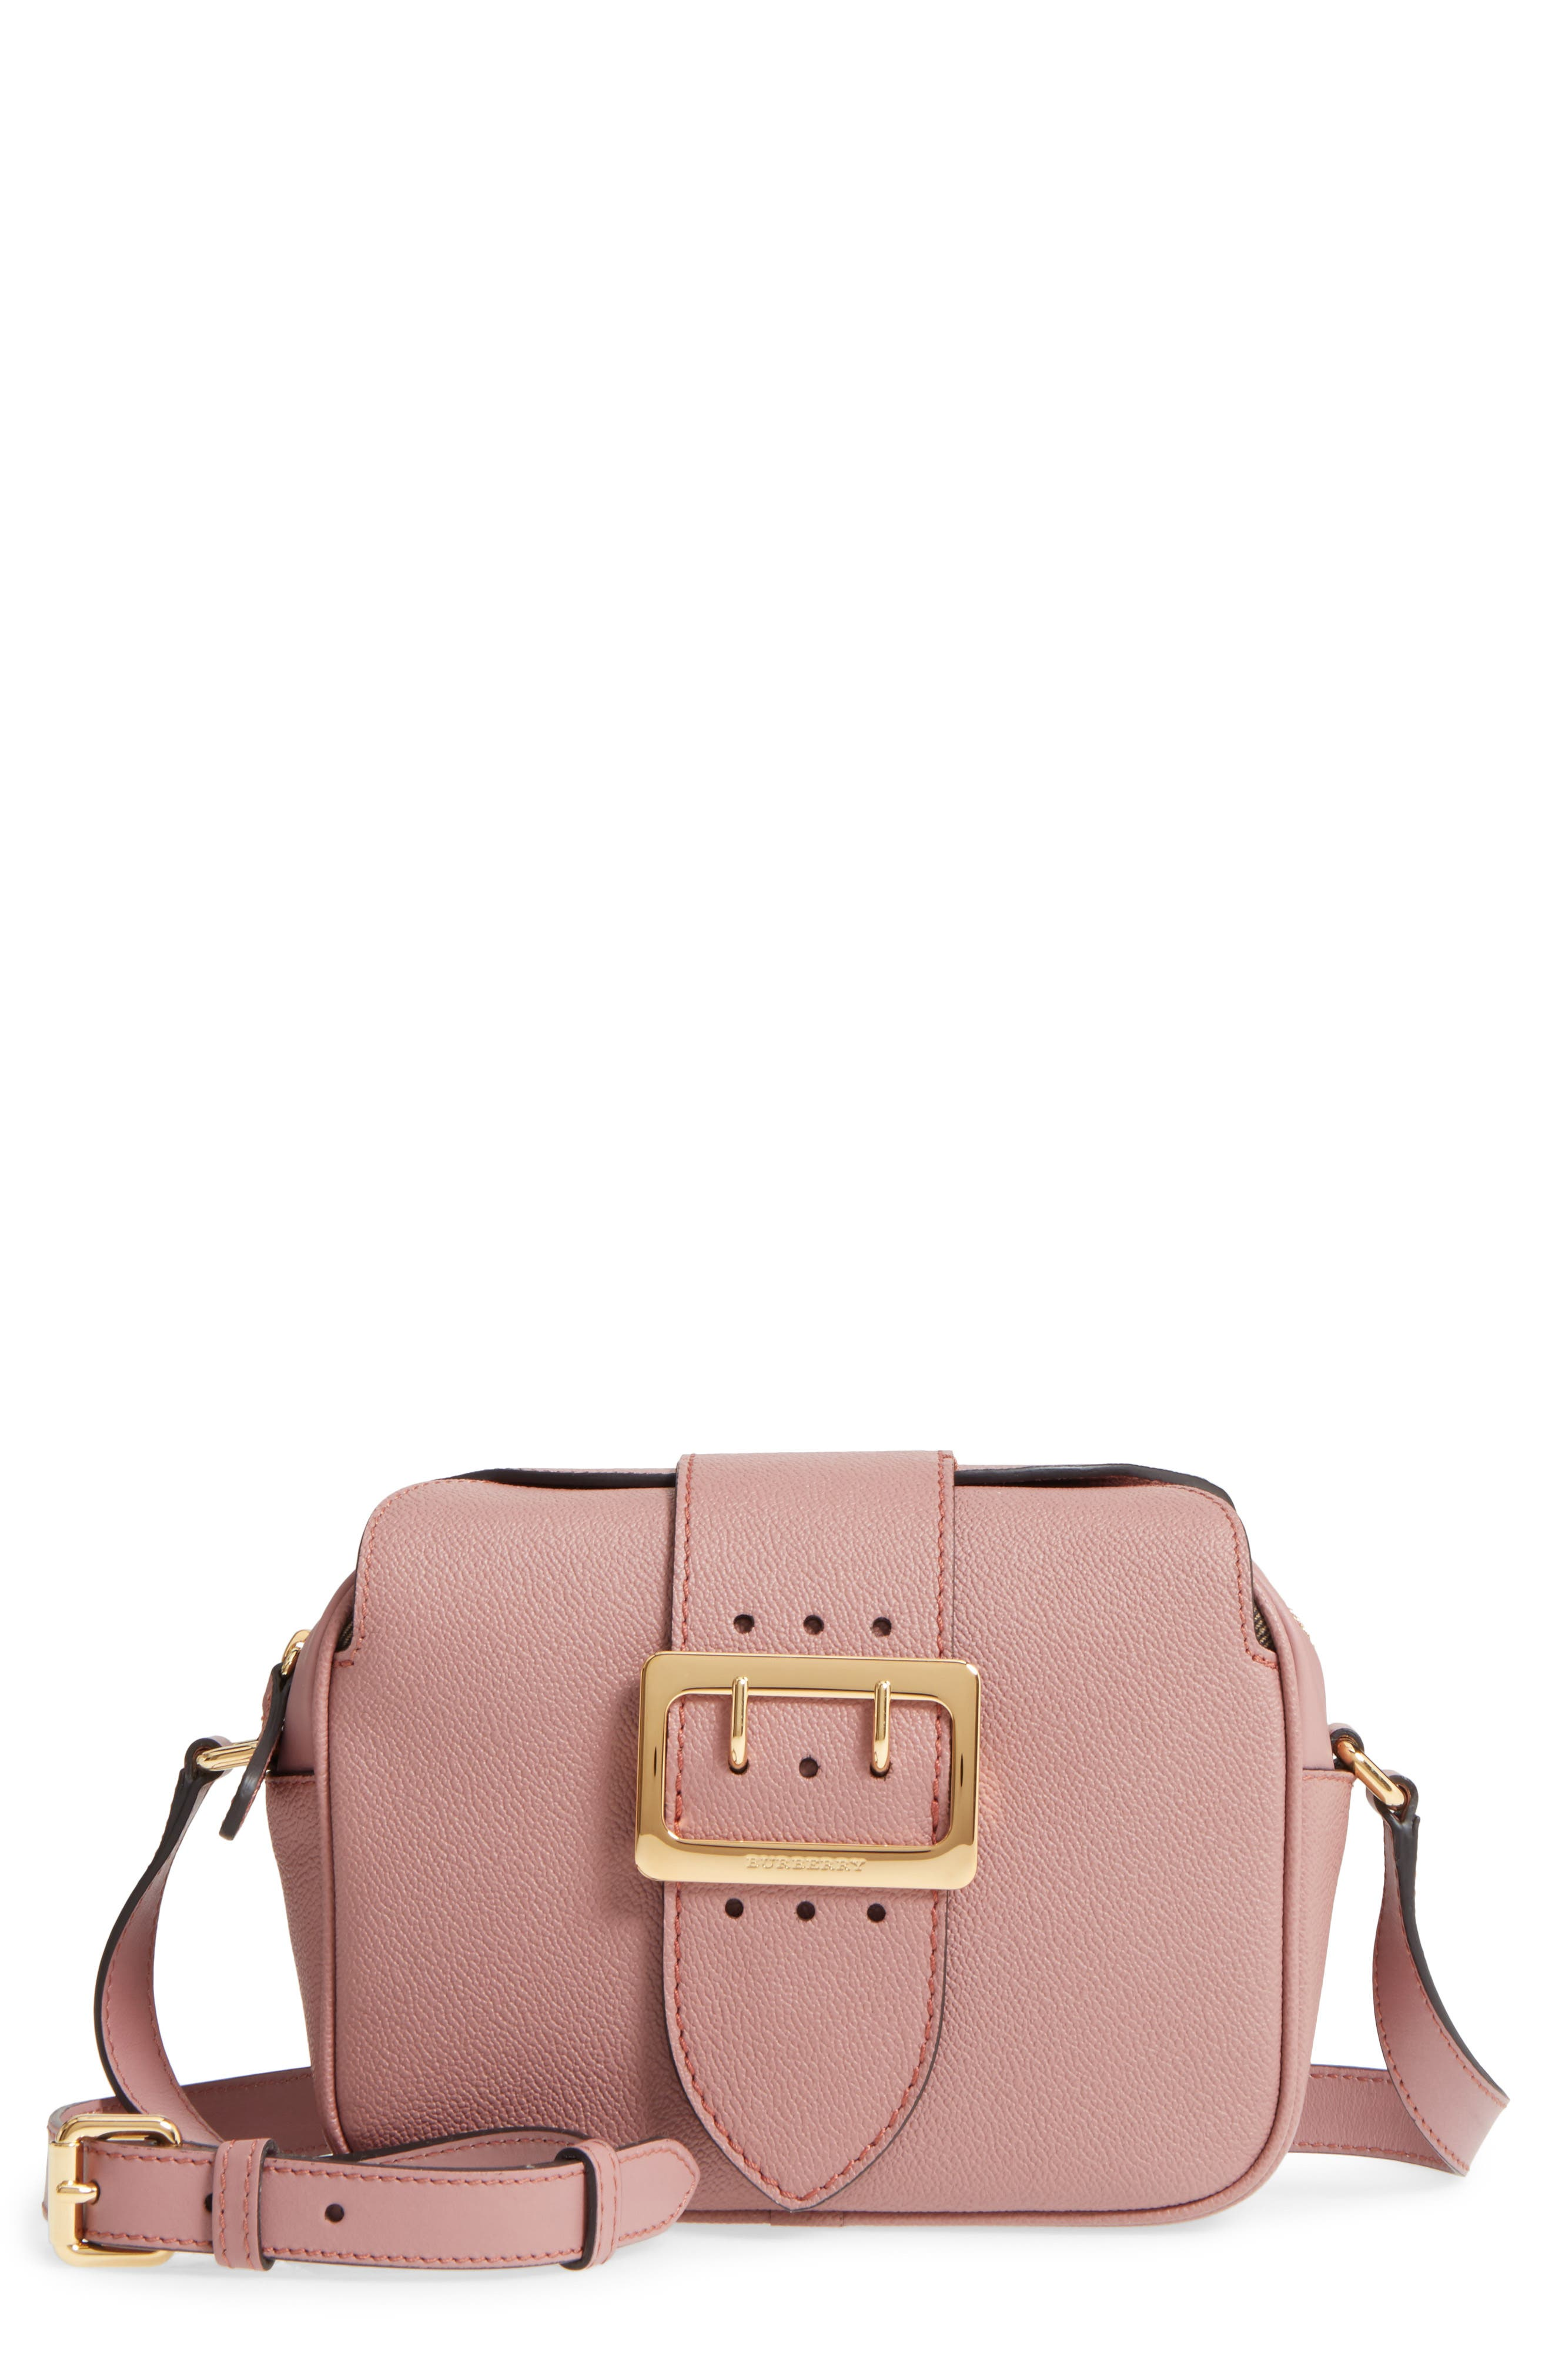 Burberry Small Buckle Leather Crossbody Bag